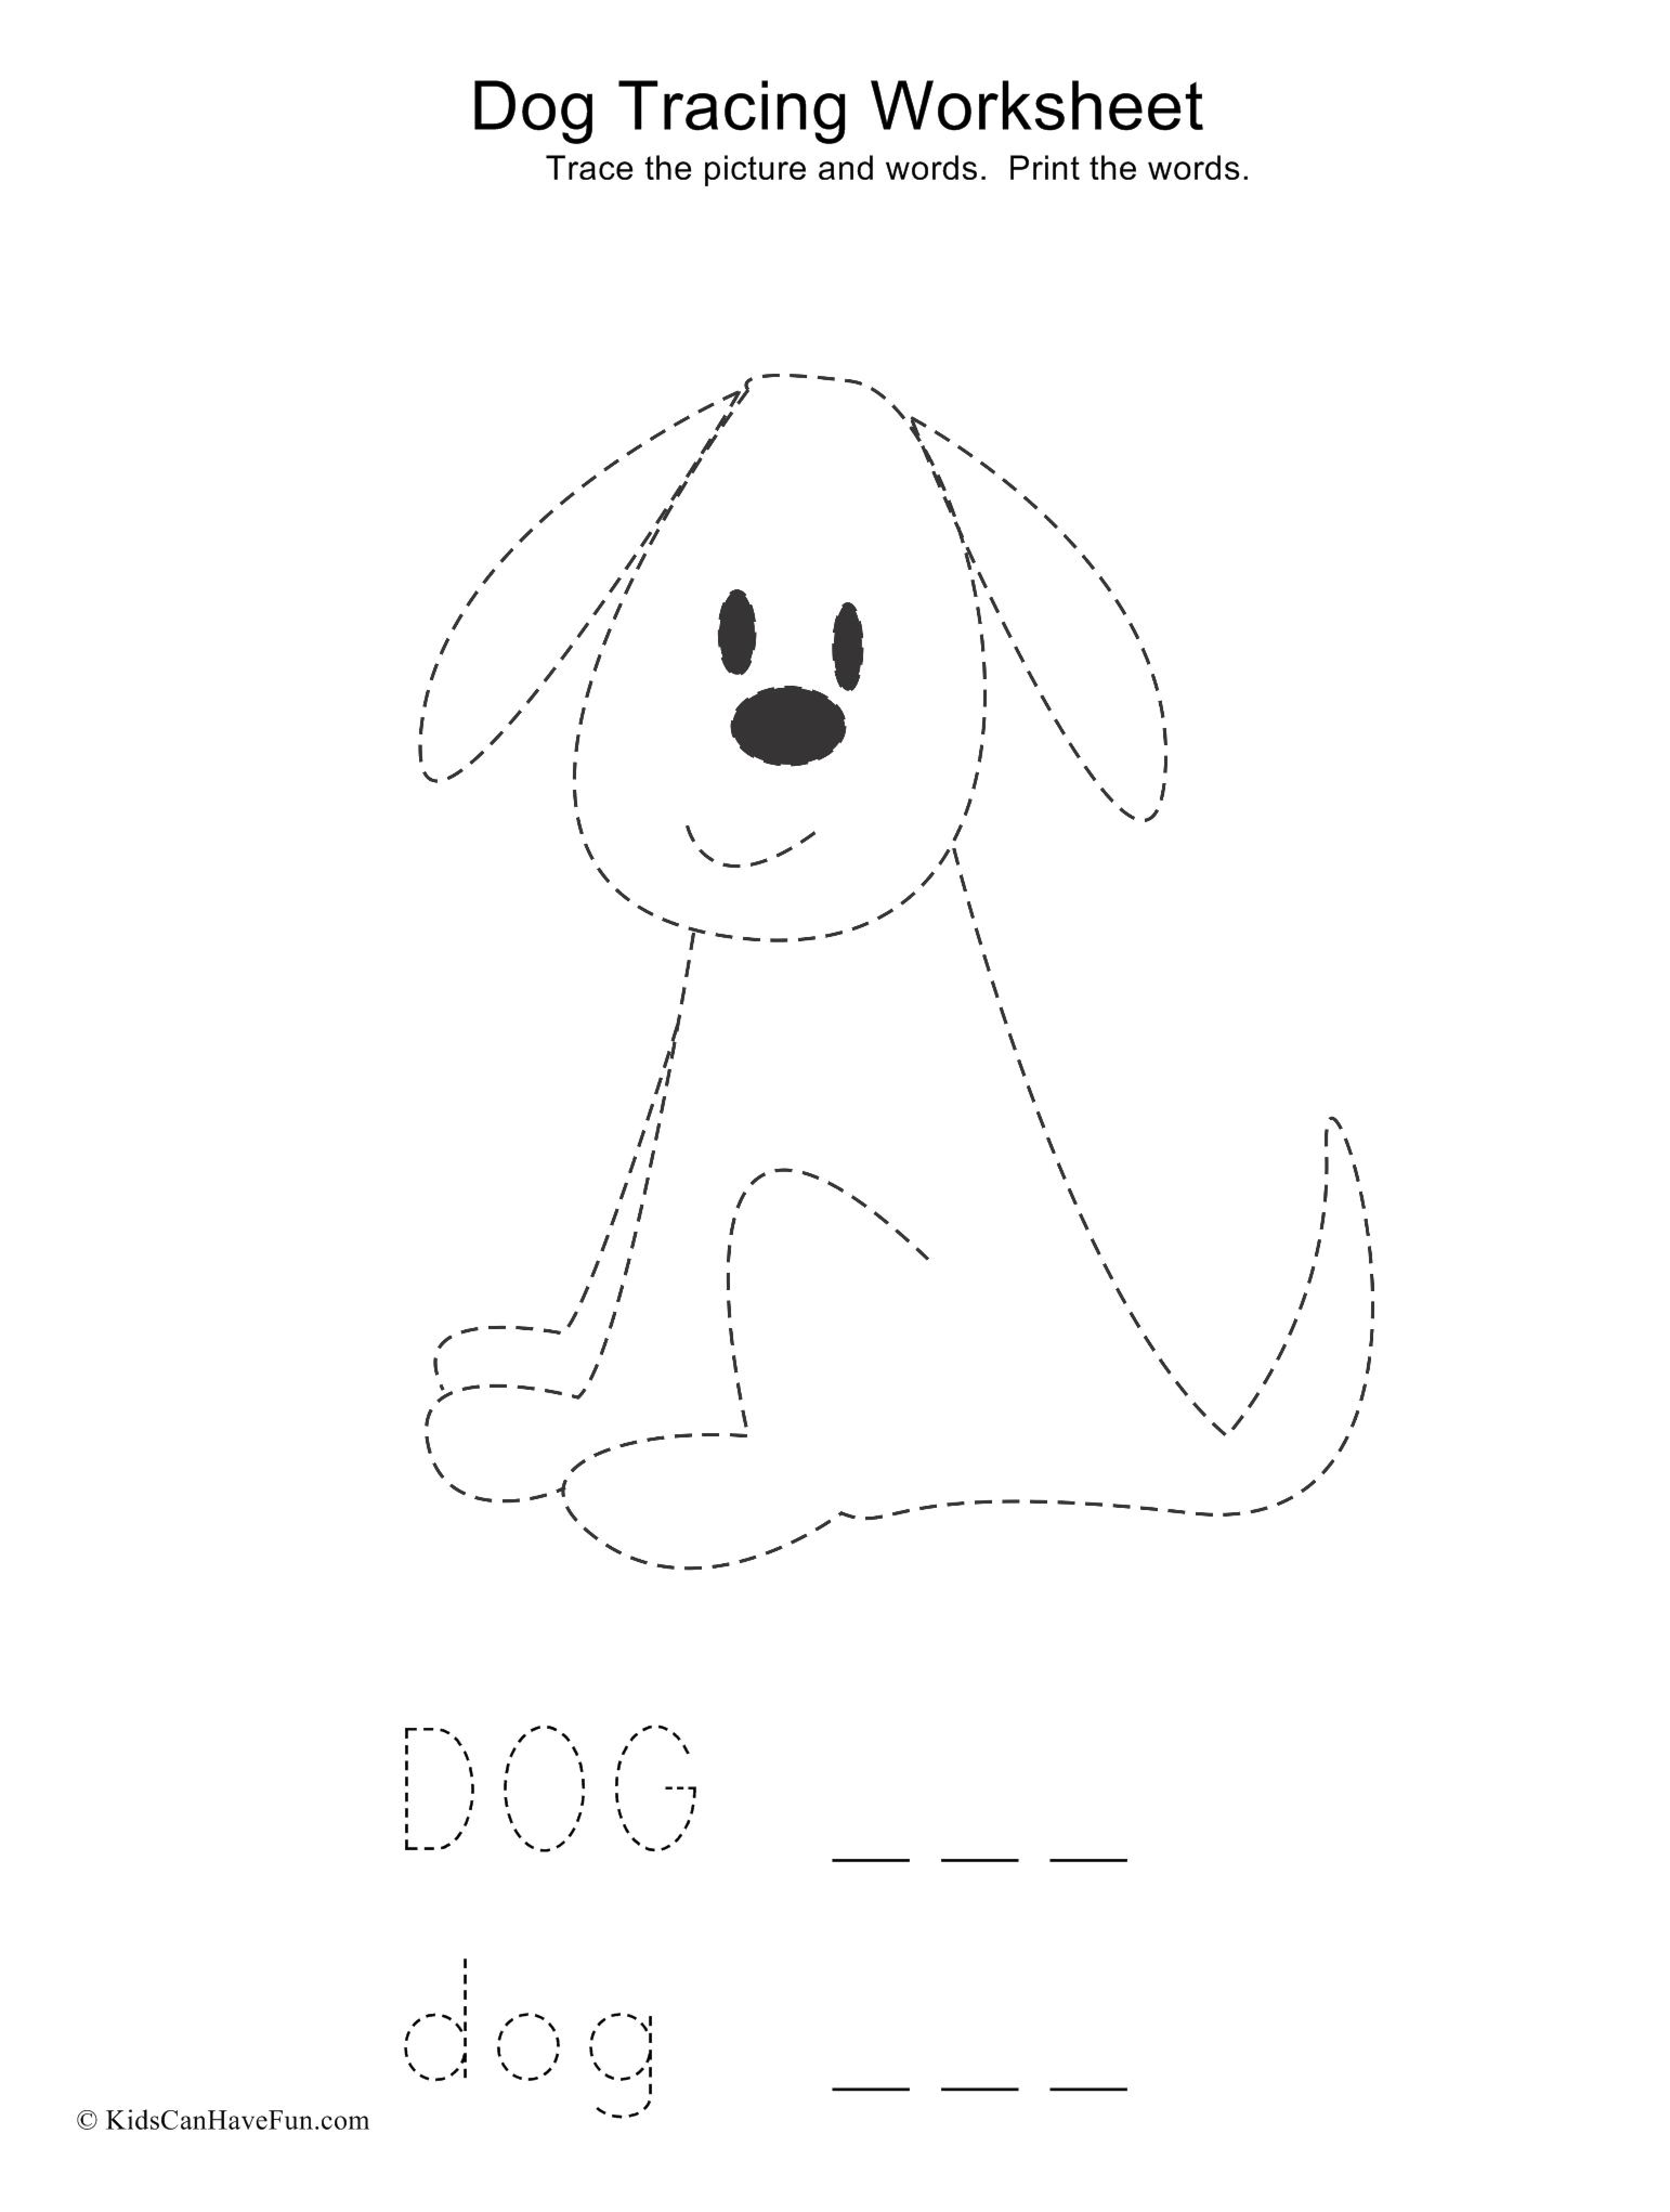 Trace The Sitting Dog And Words In